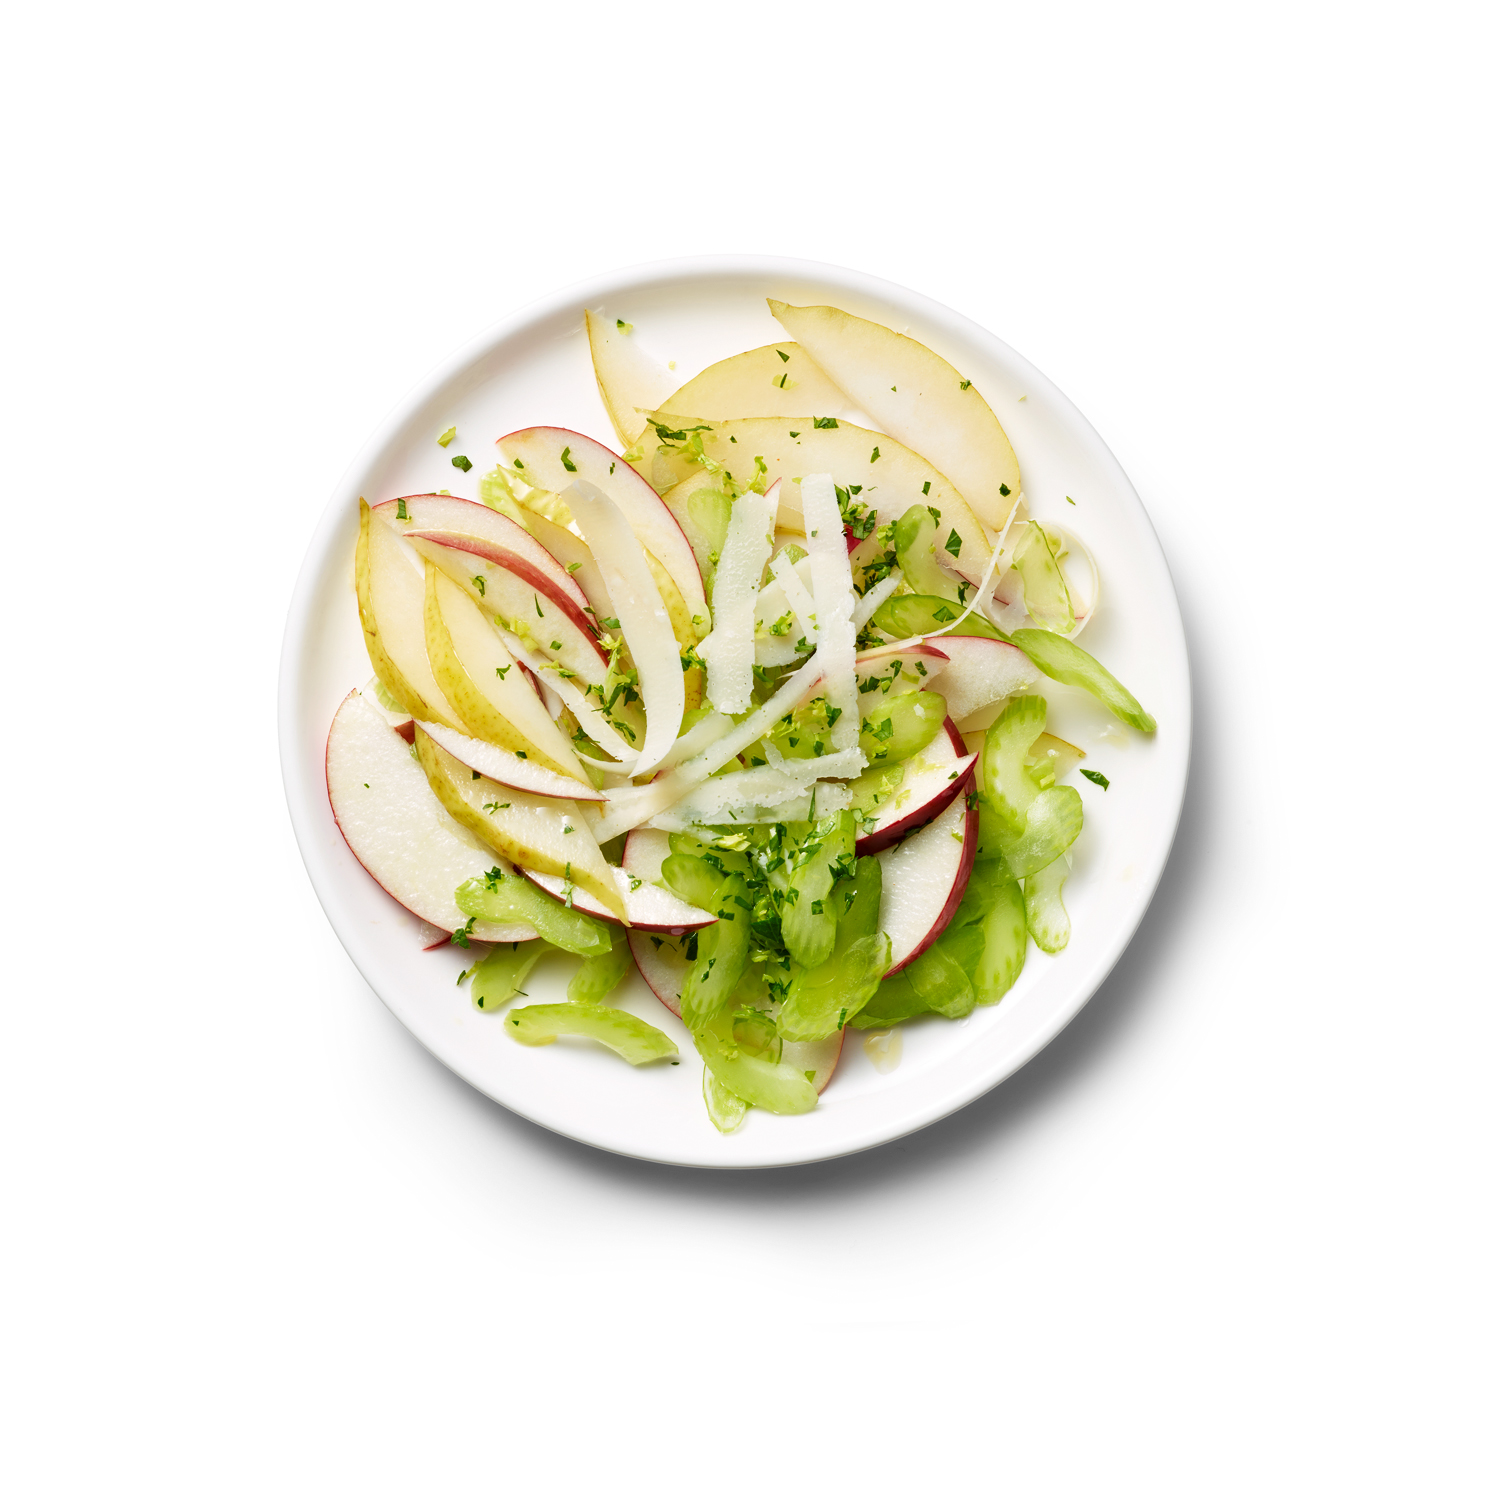 Apple, Pear, and Celery Salad